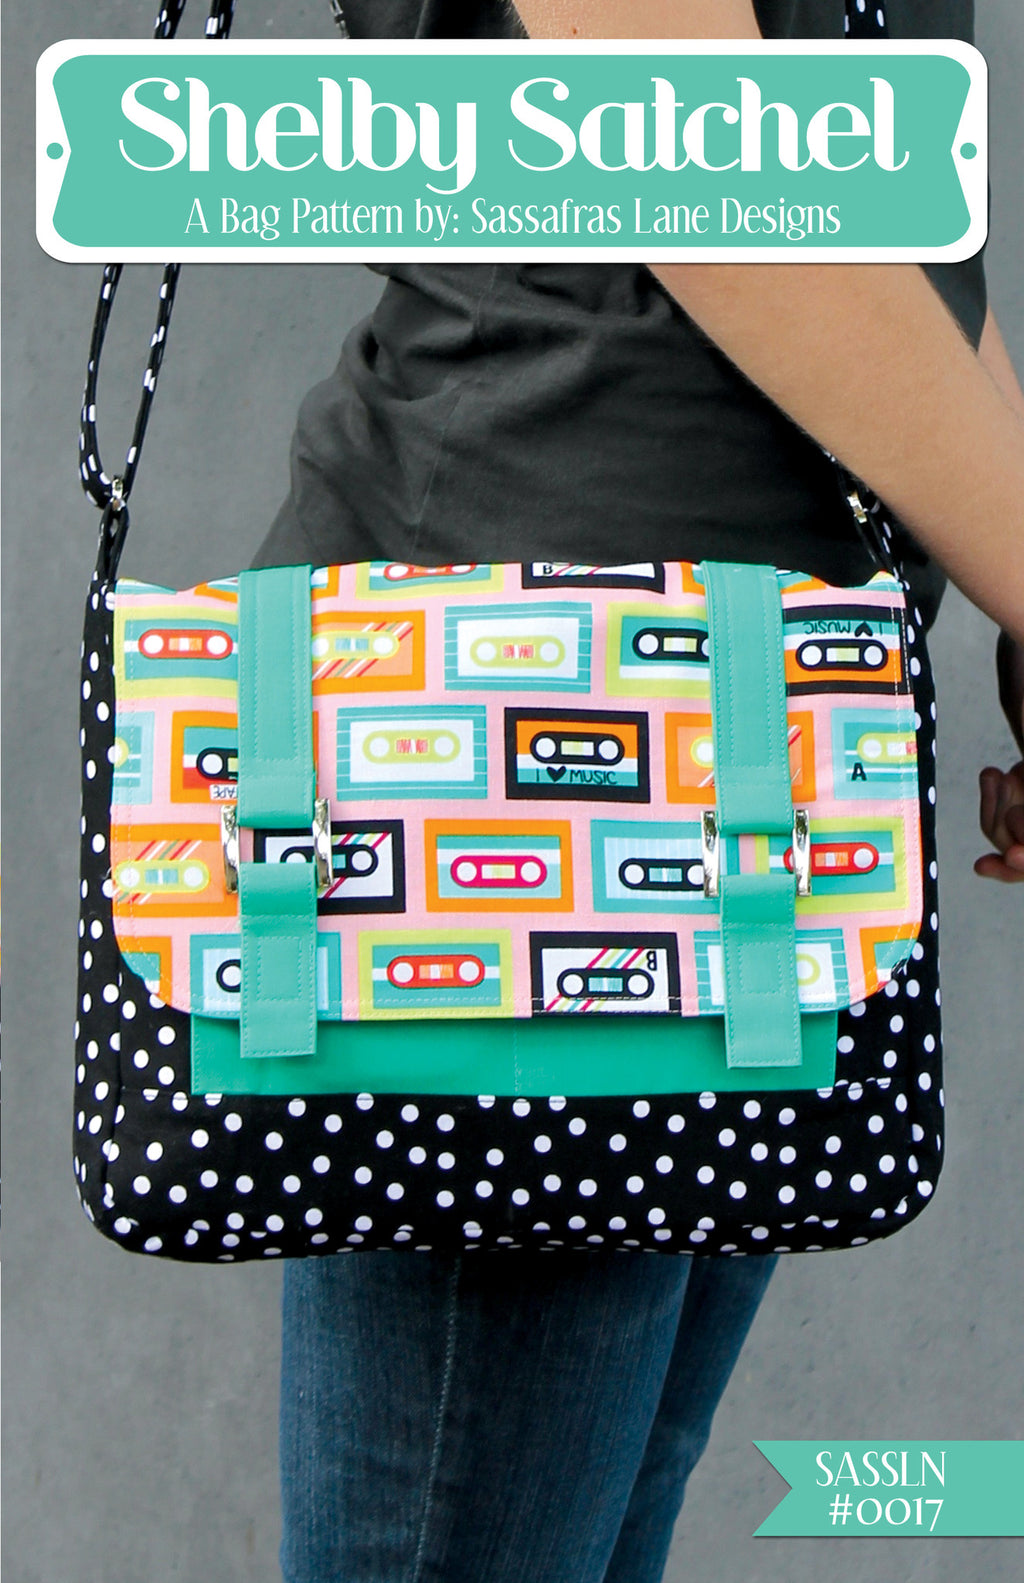 Shelby Satchel Bag Pattern